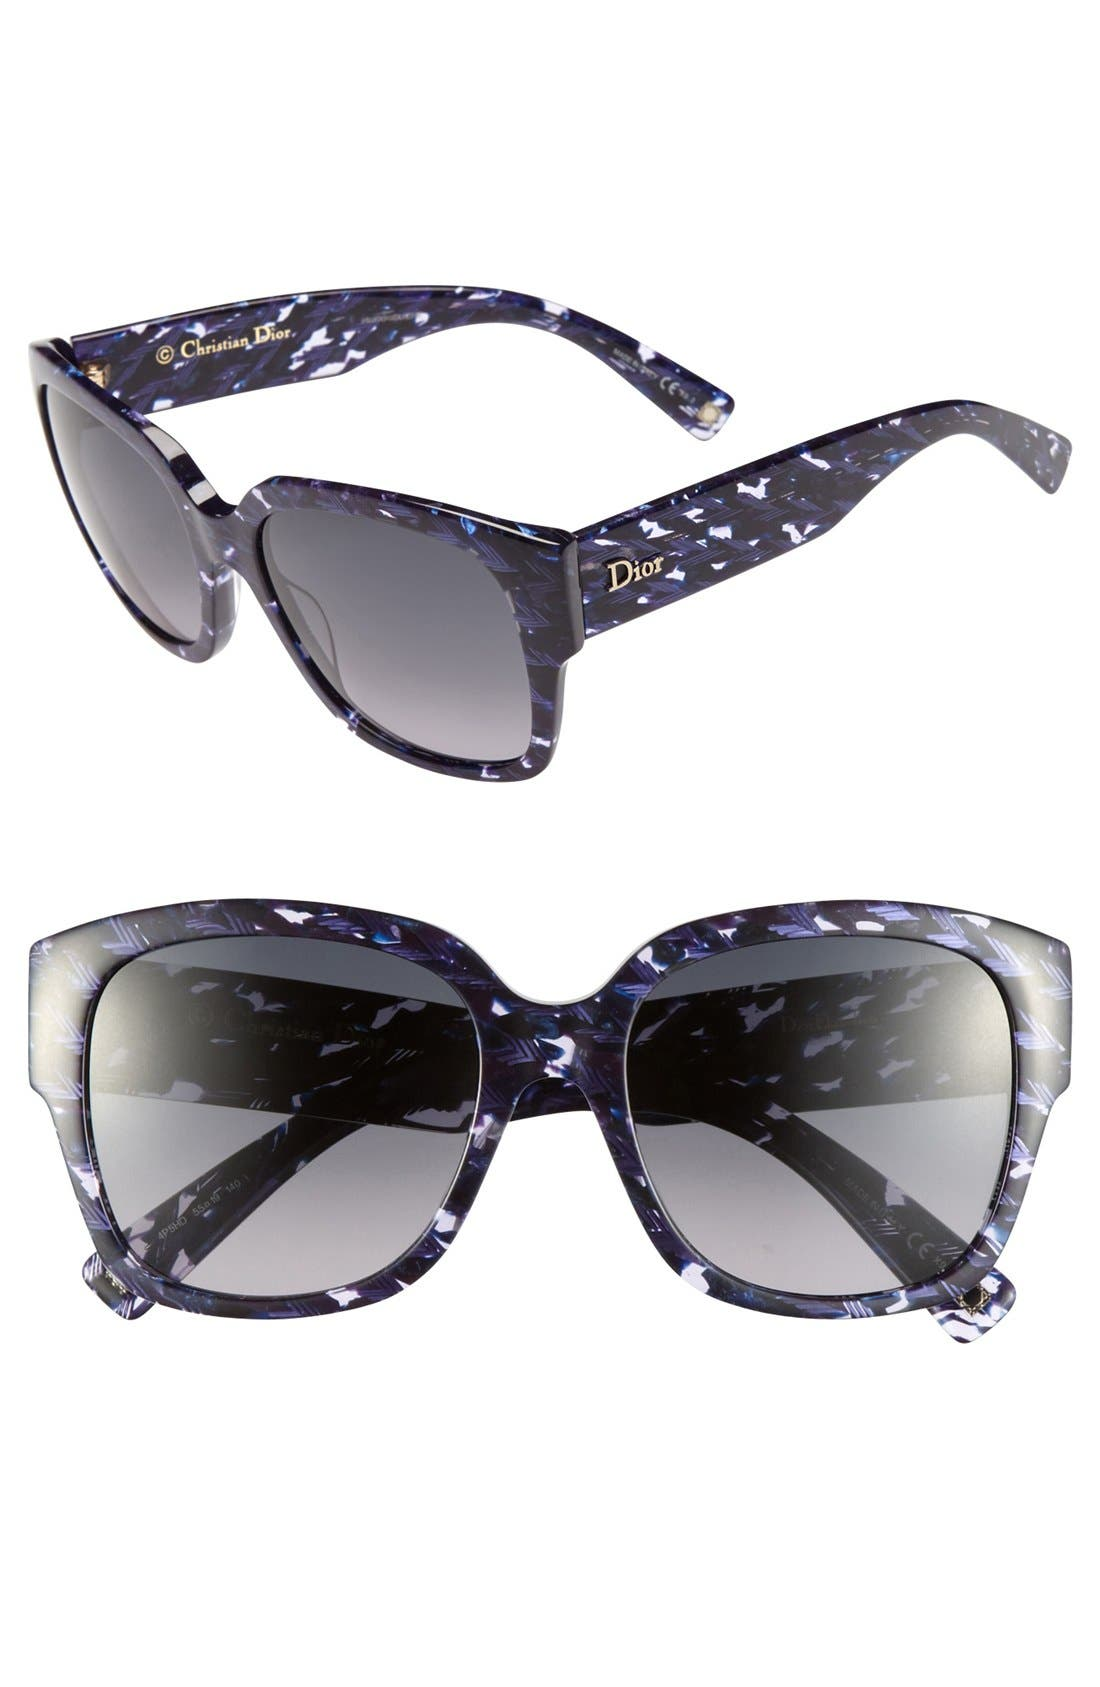 Main Image - Dior 'Flanelle' 55mm Sunglasses